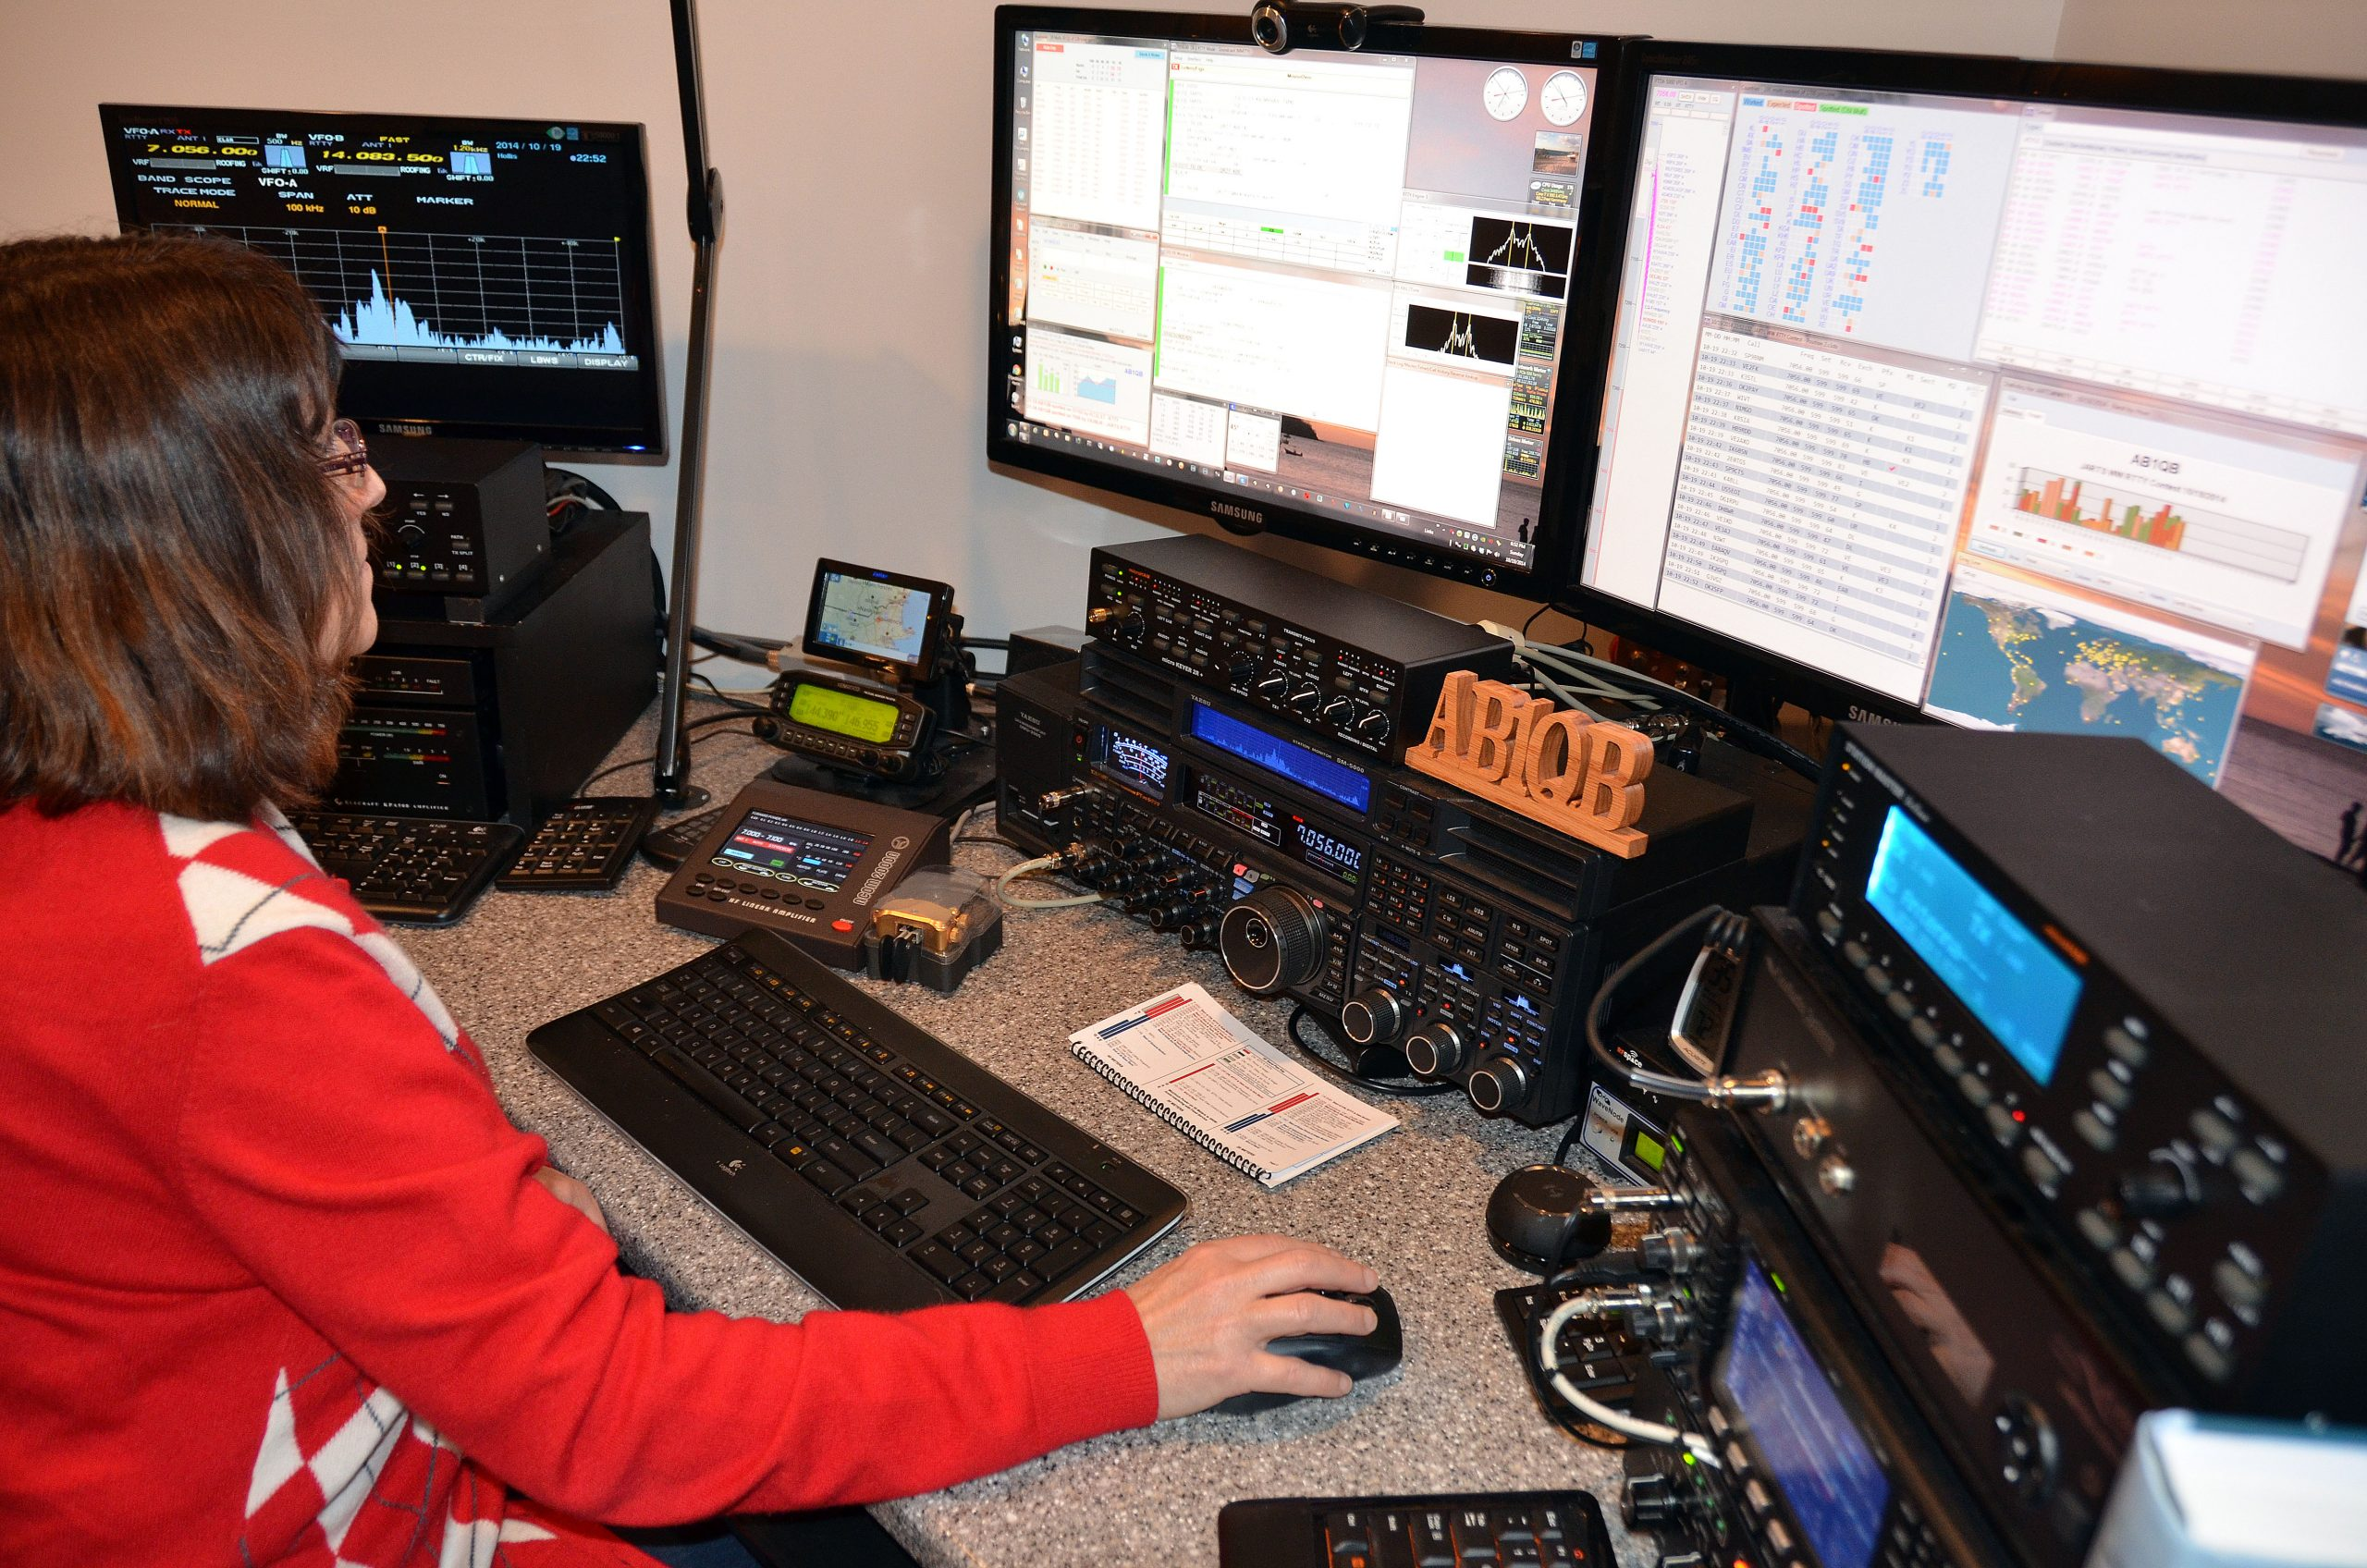 Ab1qb Enters The 2014 Jarts Rtty Contest Our First Use 1